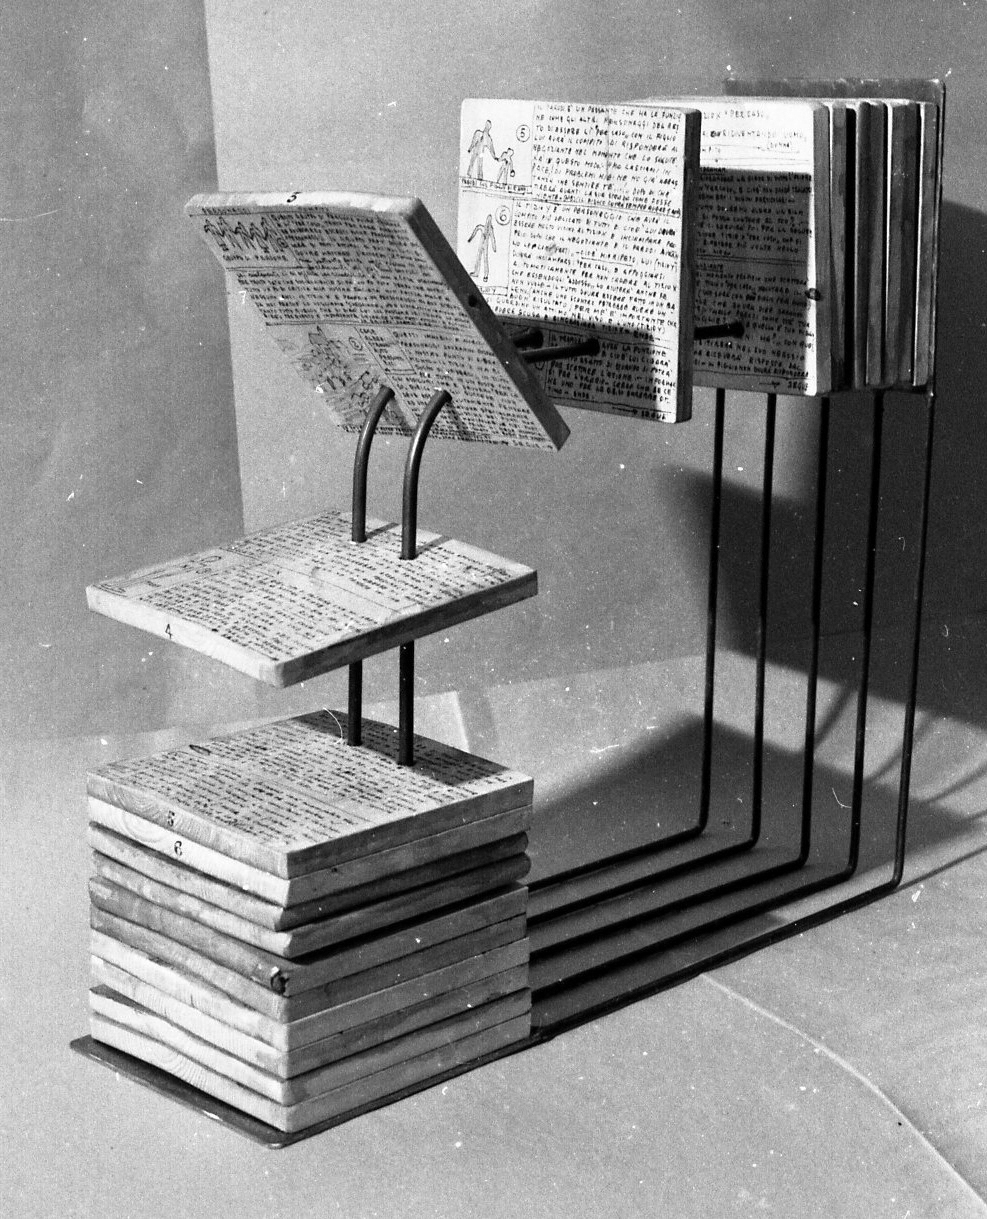 The wooden handwritten/ -drawn pages are threaded through holes on metal tubes which form a cube